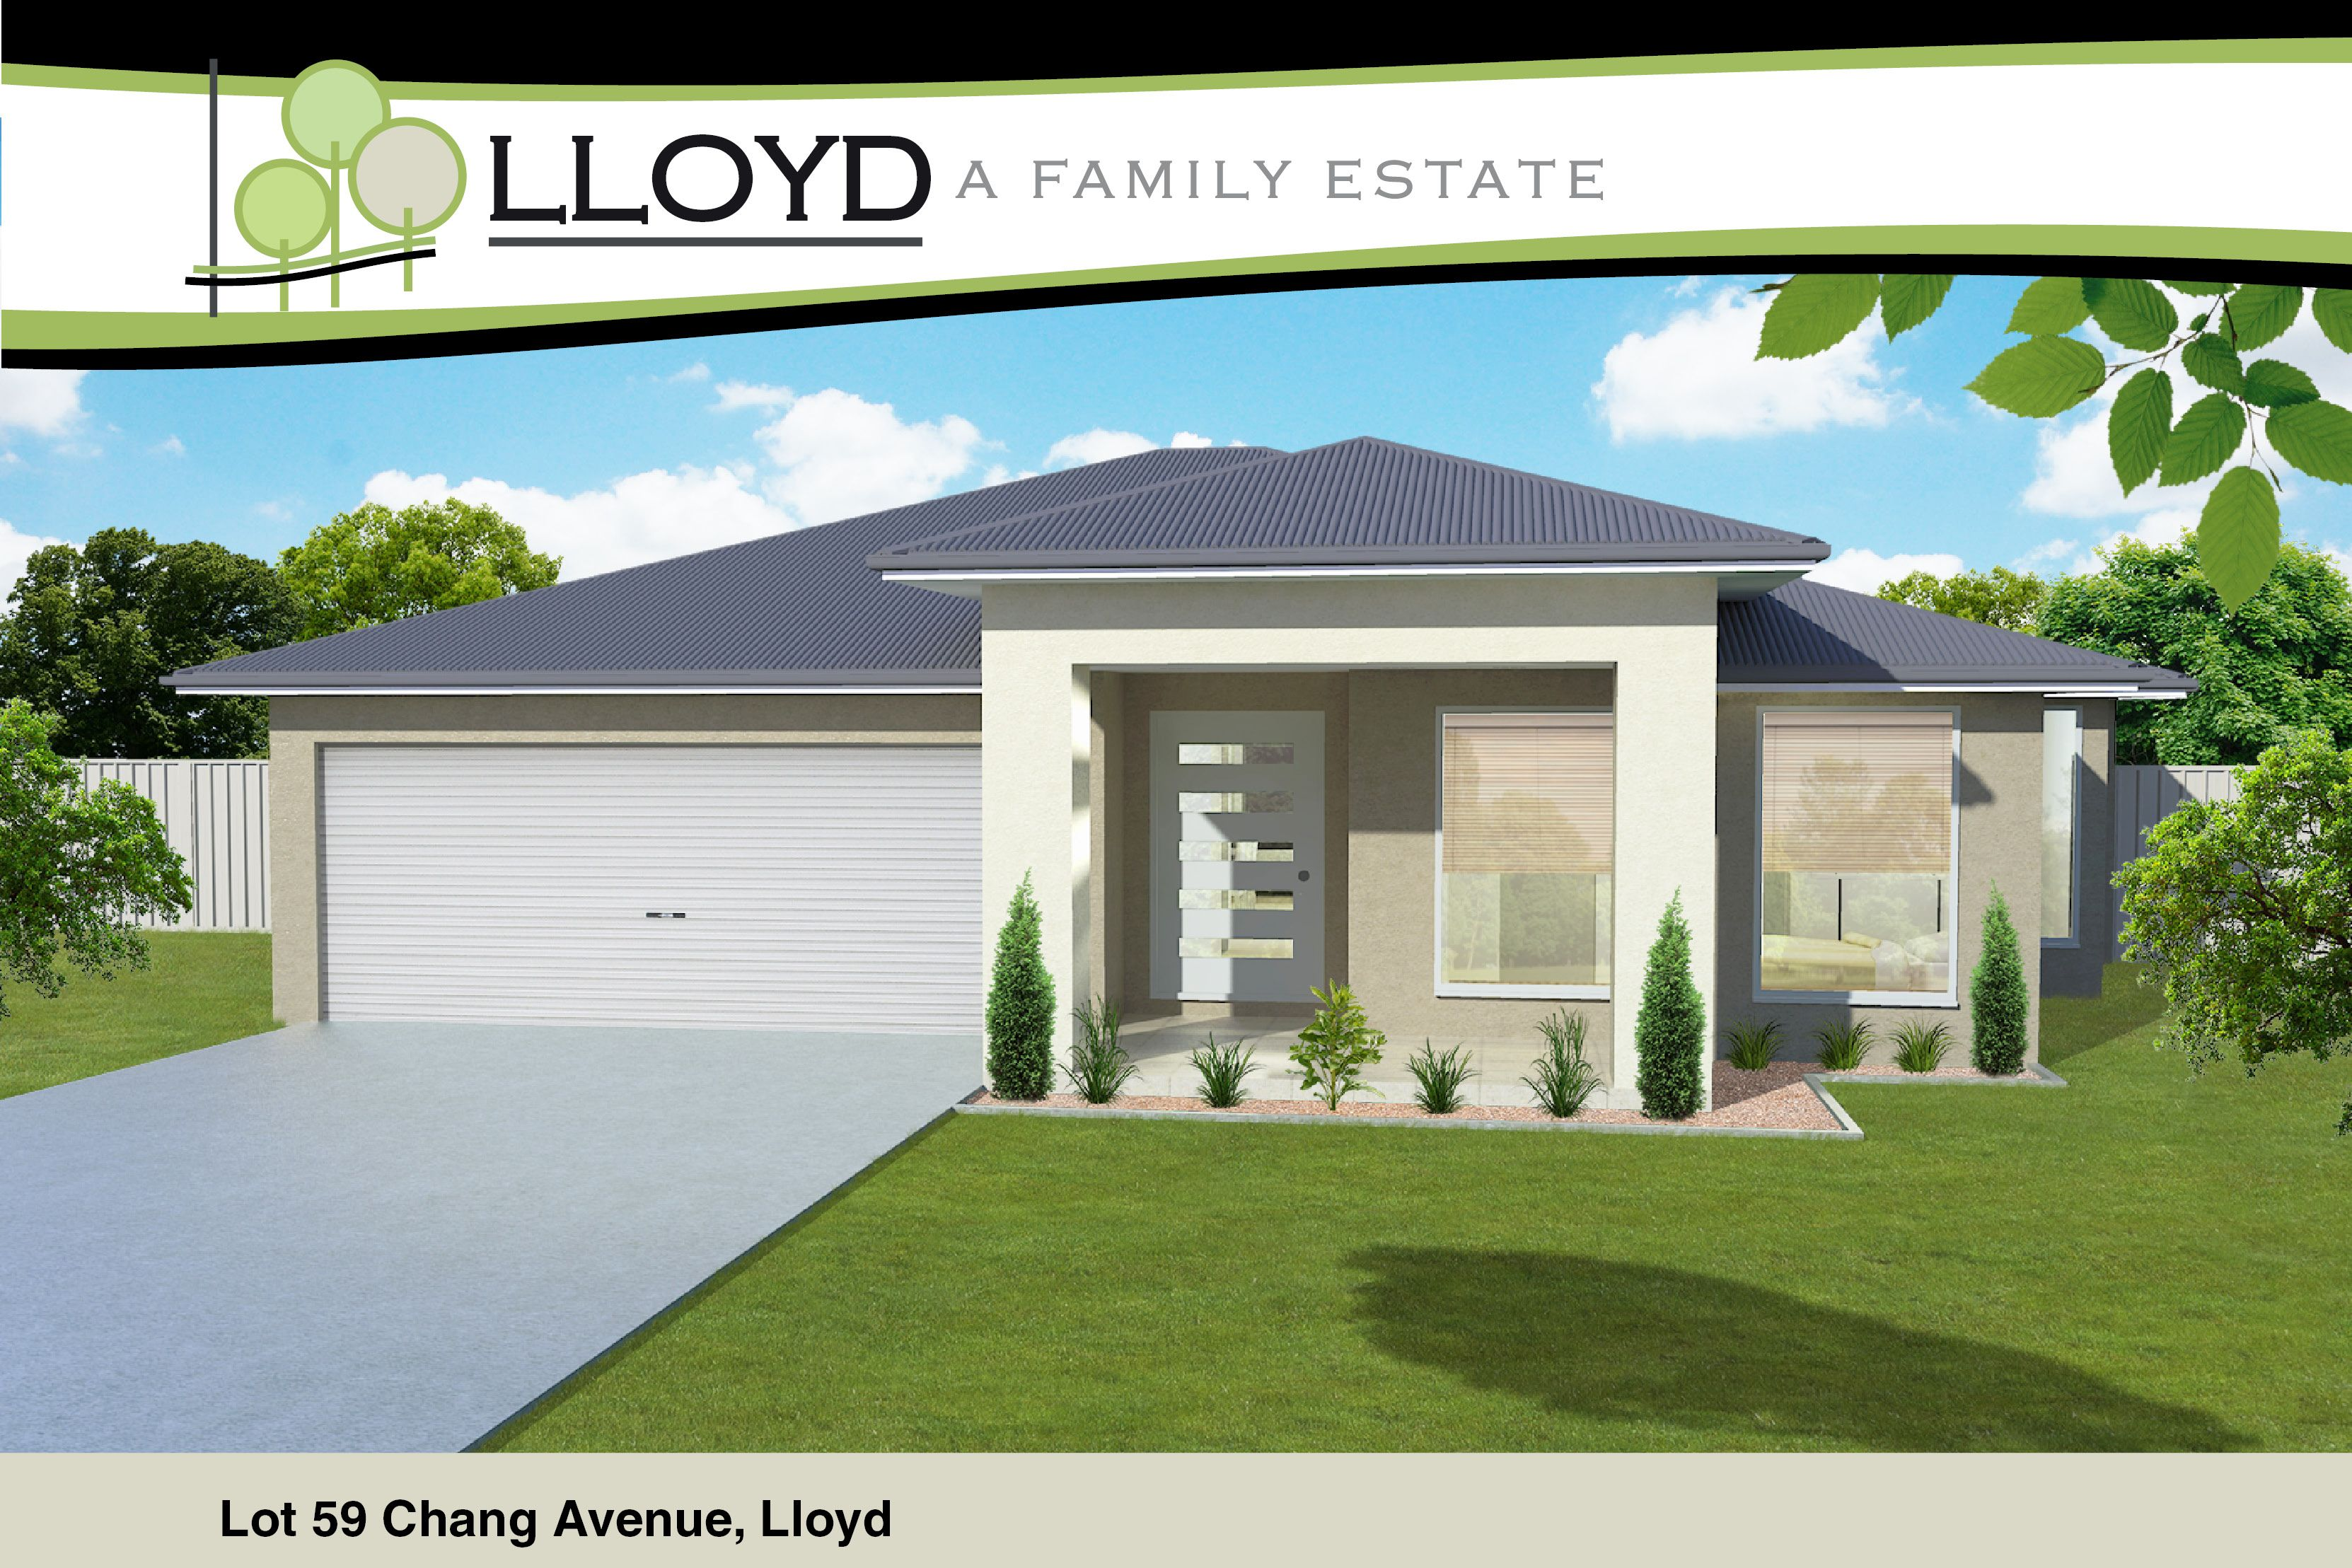 Lot 59 Chang Avenue, Lloyd